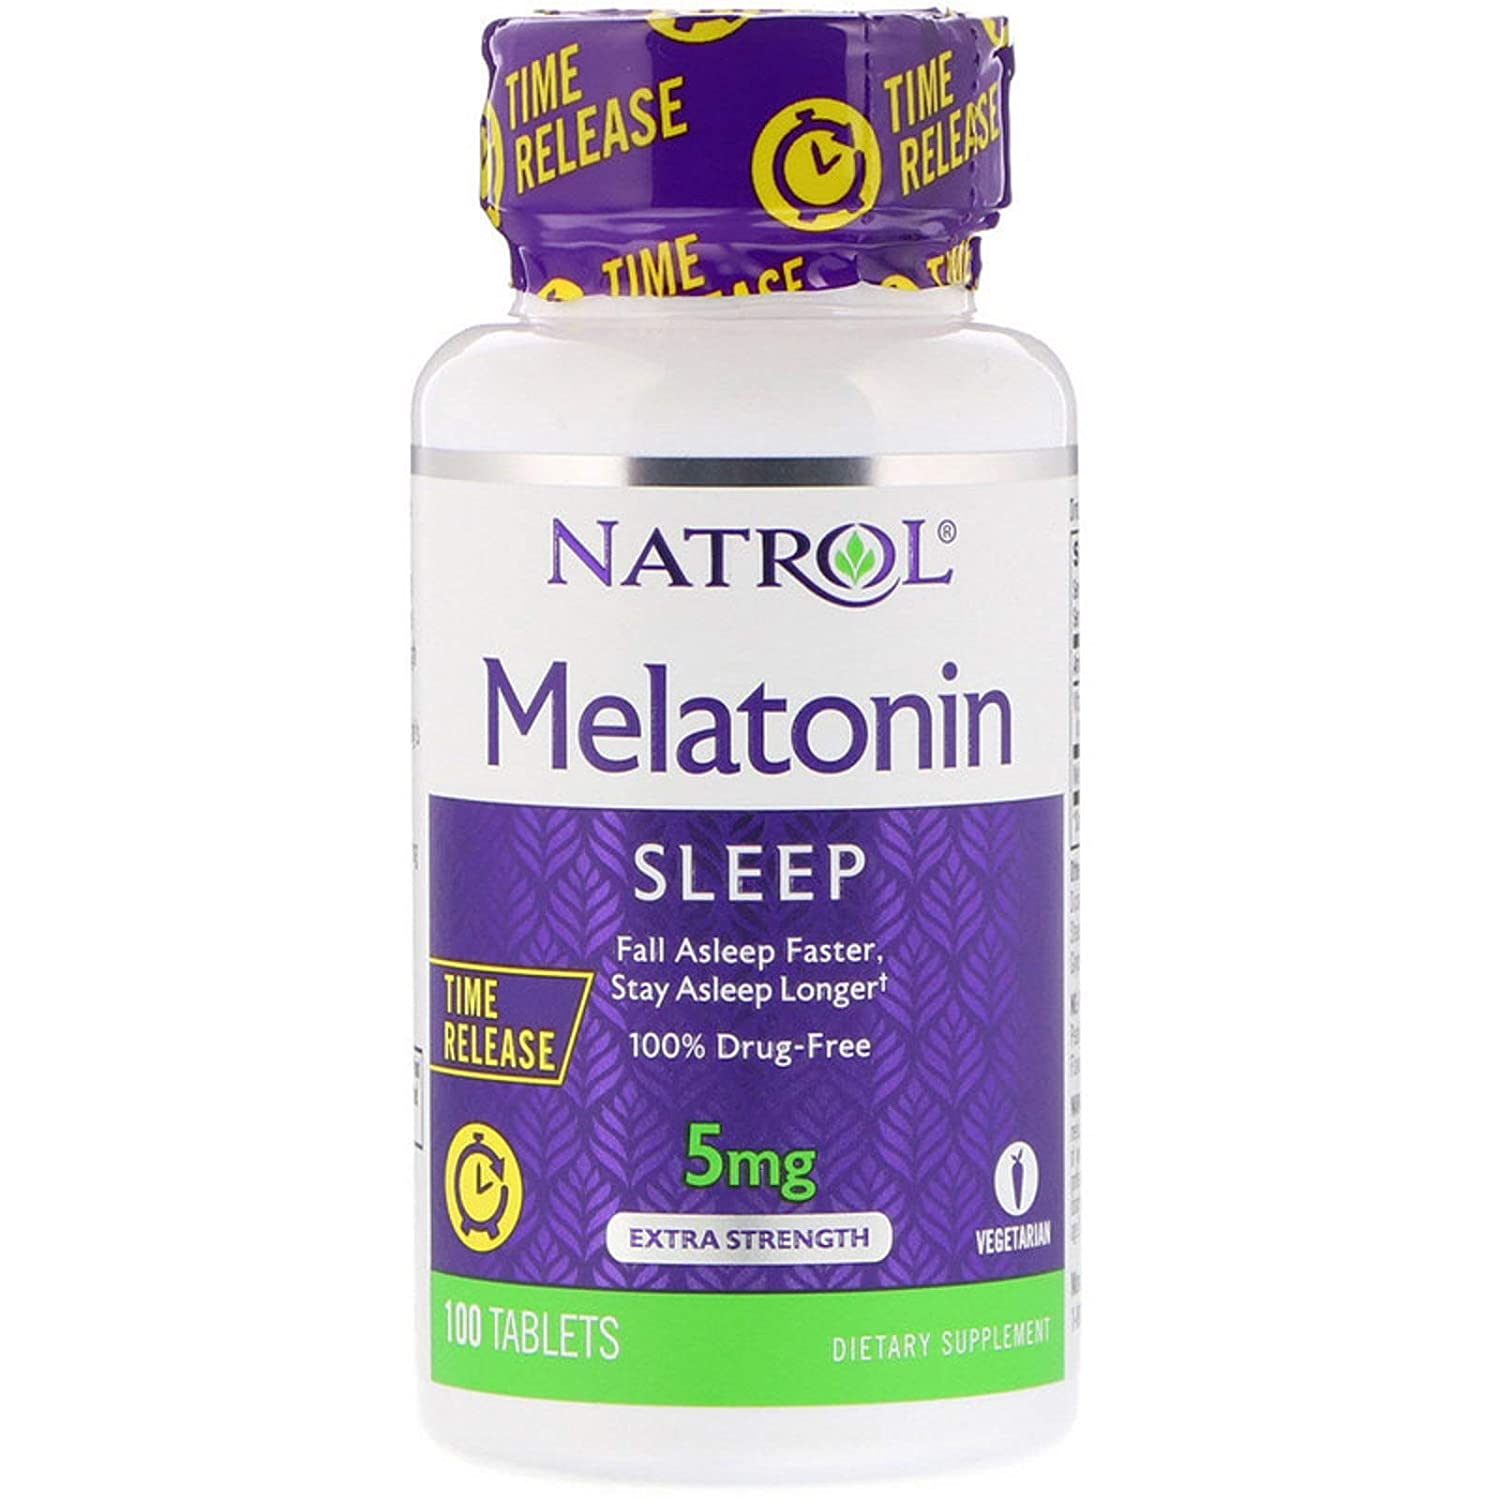 Amazon.com: Melatonin Time Release Extra Strength Vitamin B-6 Fall Asleep Faster Stay Asleep Longer 5 mg 100 Tablets: Health & Personal Care